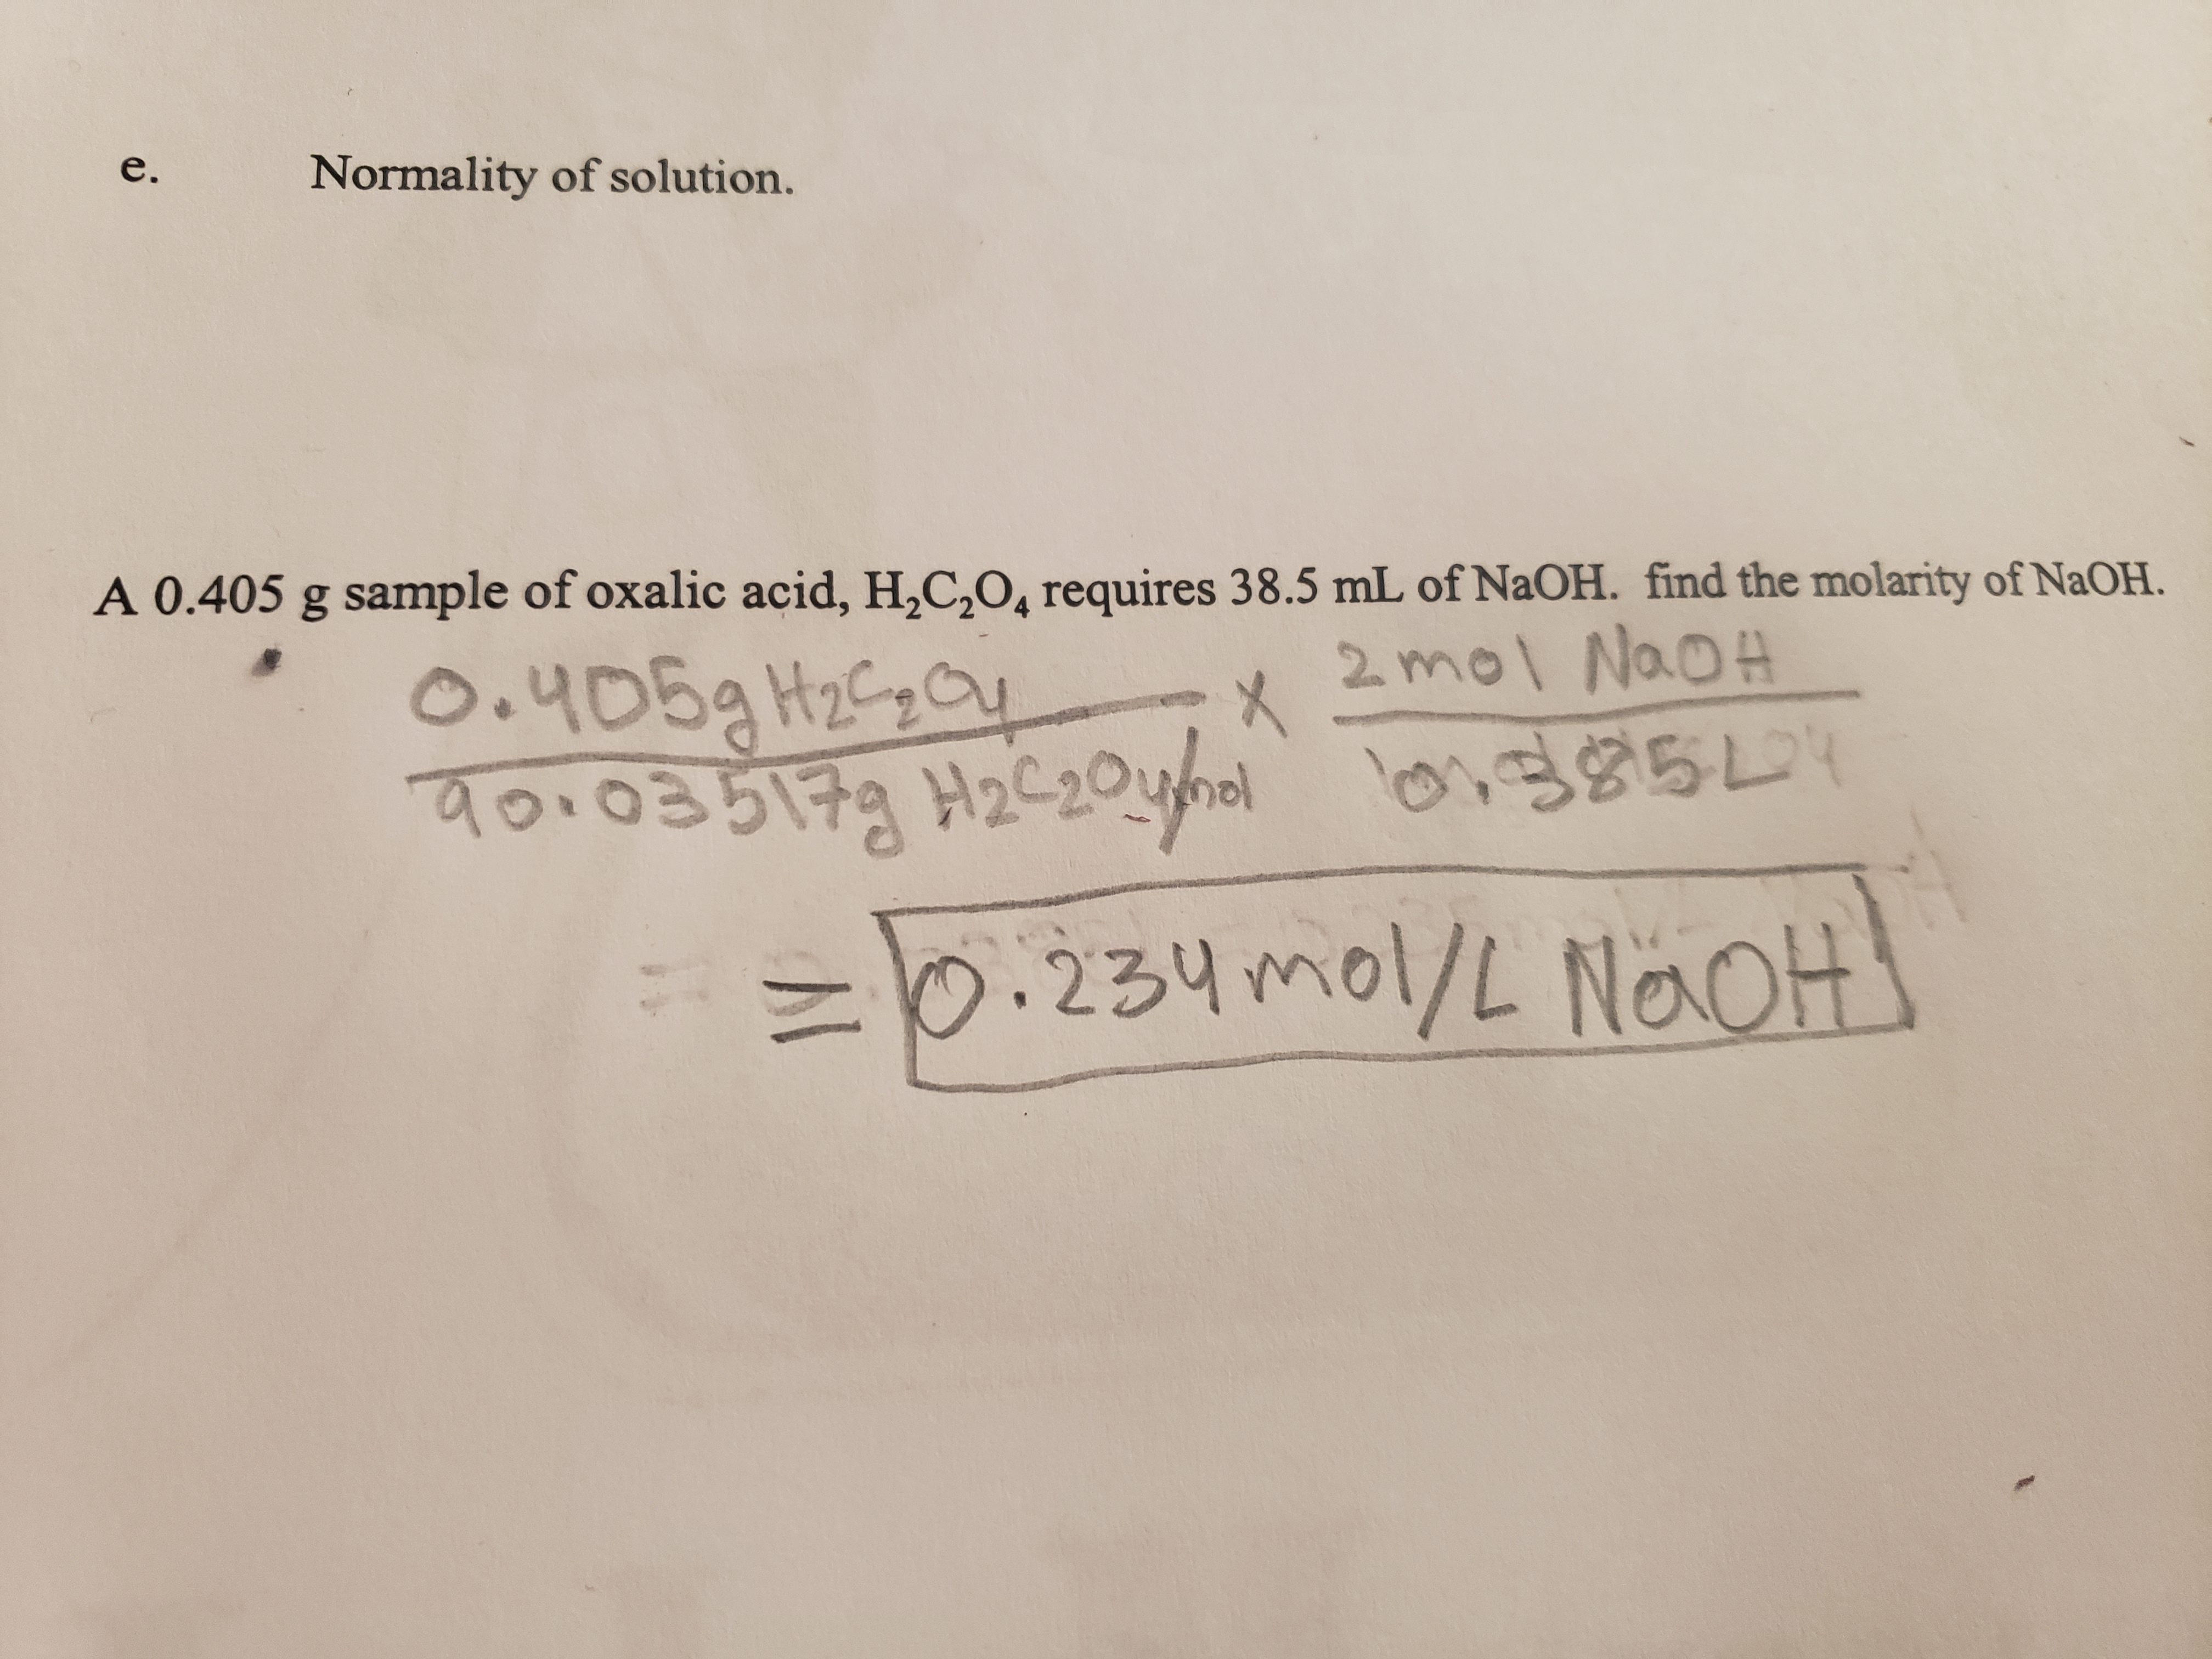 e. Normality of solution. A 0.405 g sample of oxalic acid, H2C,04 requires 38.5 mL of NaOH. find the molarity of NaOH. O.405aH2a ५०६ u 2mol NaoA o.03514 22ohl LI .234 mol/L NaoH